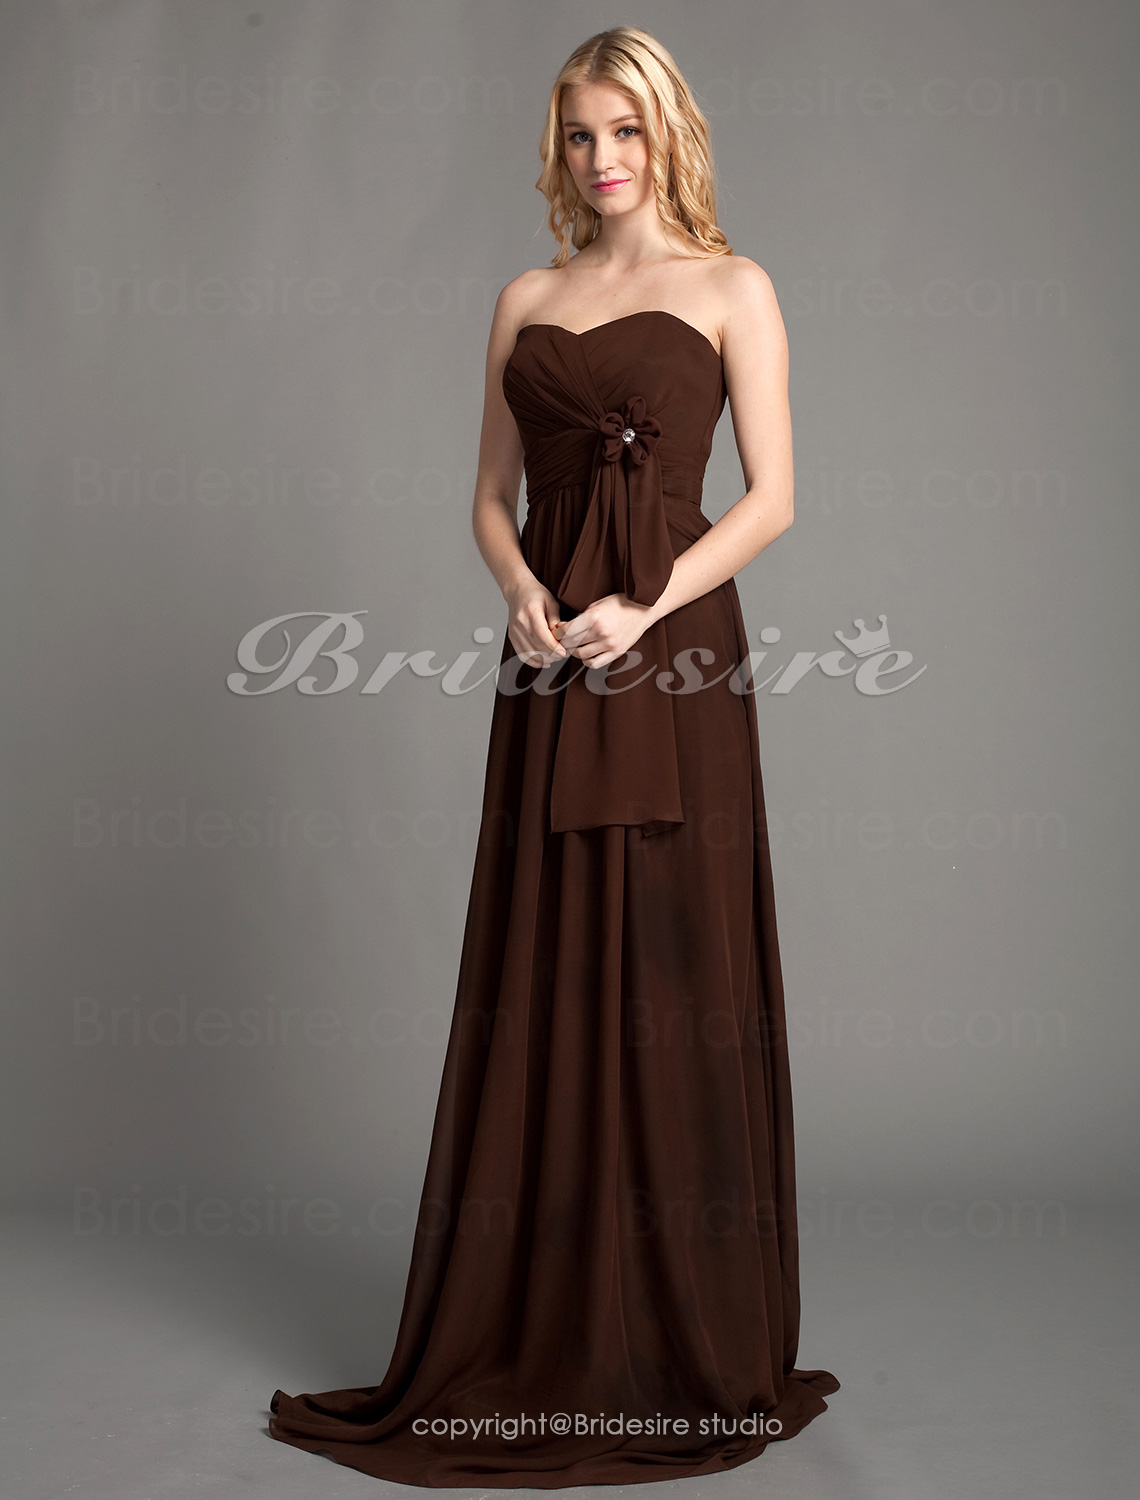 A-line Chiffon Floor-length Sweetheart Bridesmaid Dress with Removale Straps